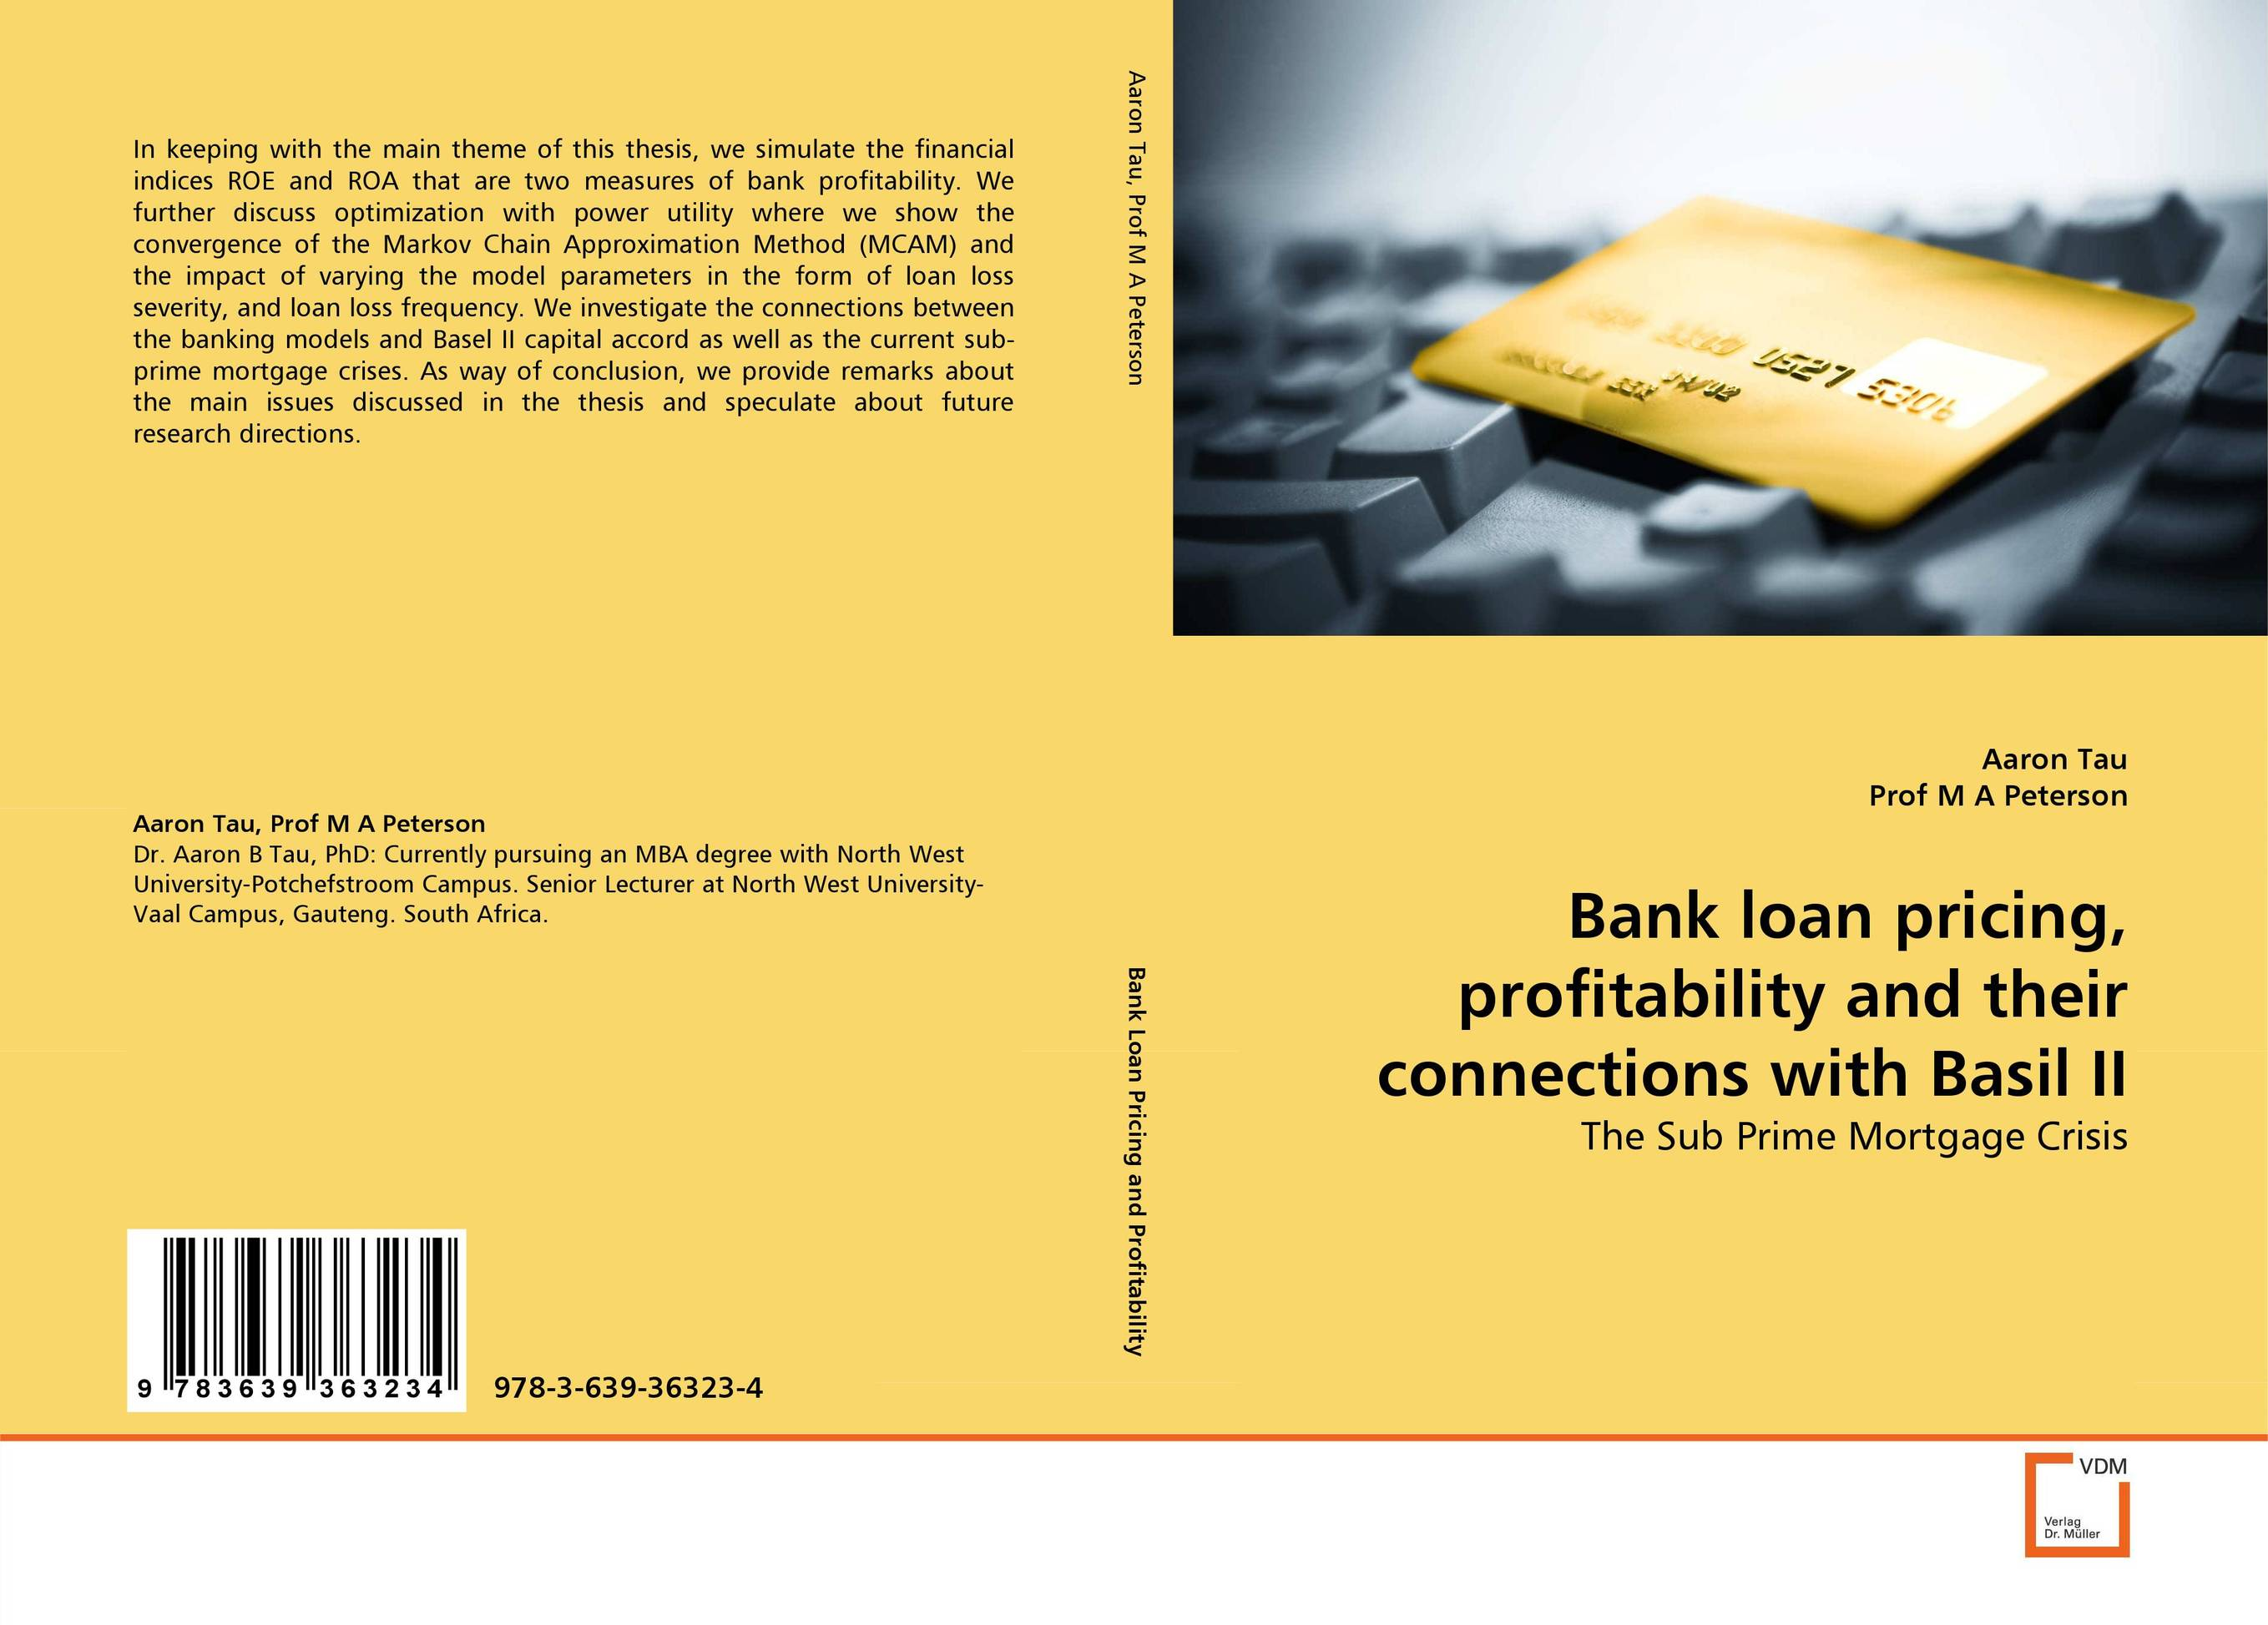 Bank loan pricing, profitability and their connections with Basil II economic efficiency and profitability of islamic bank